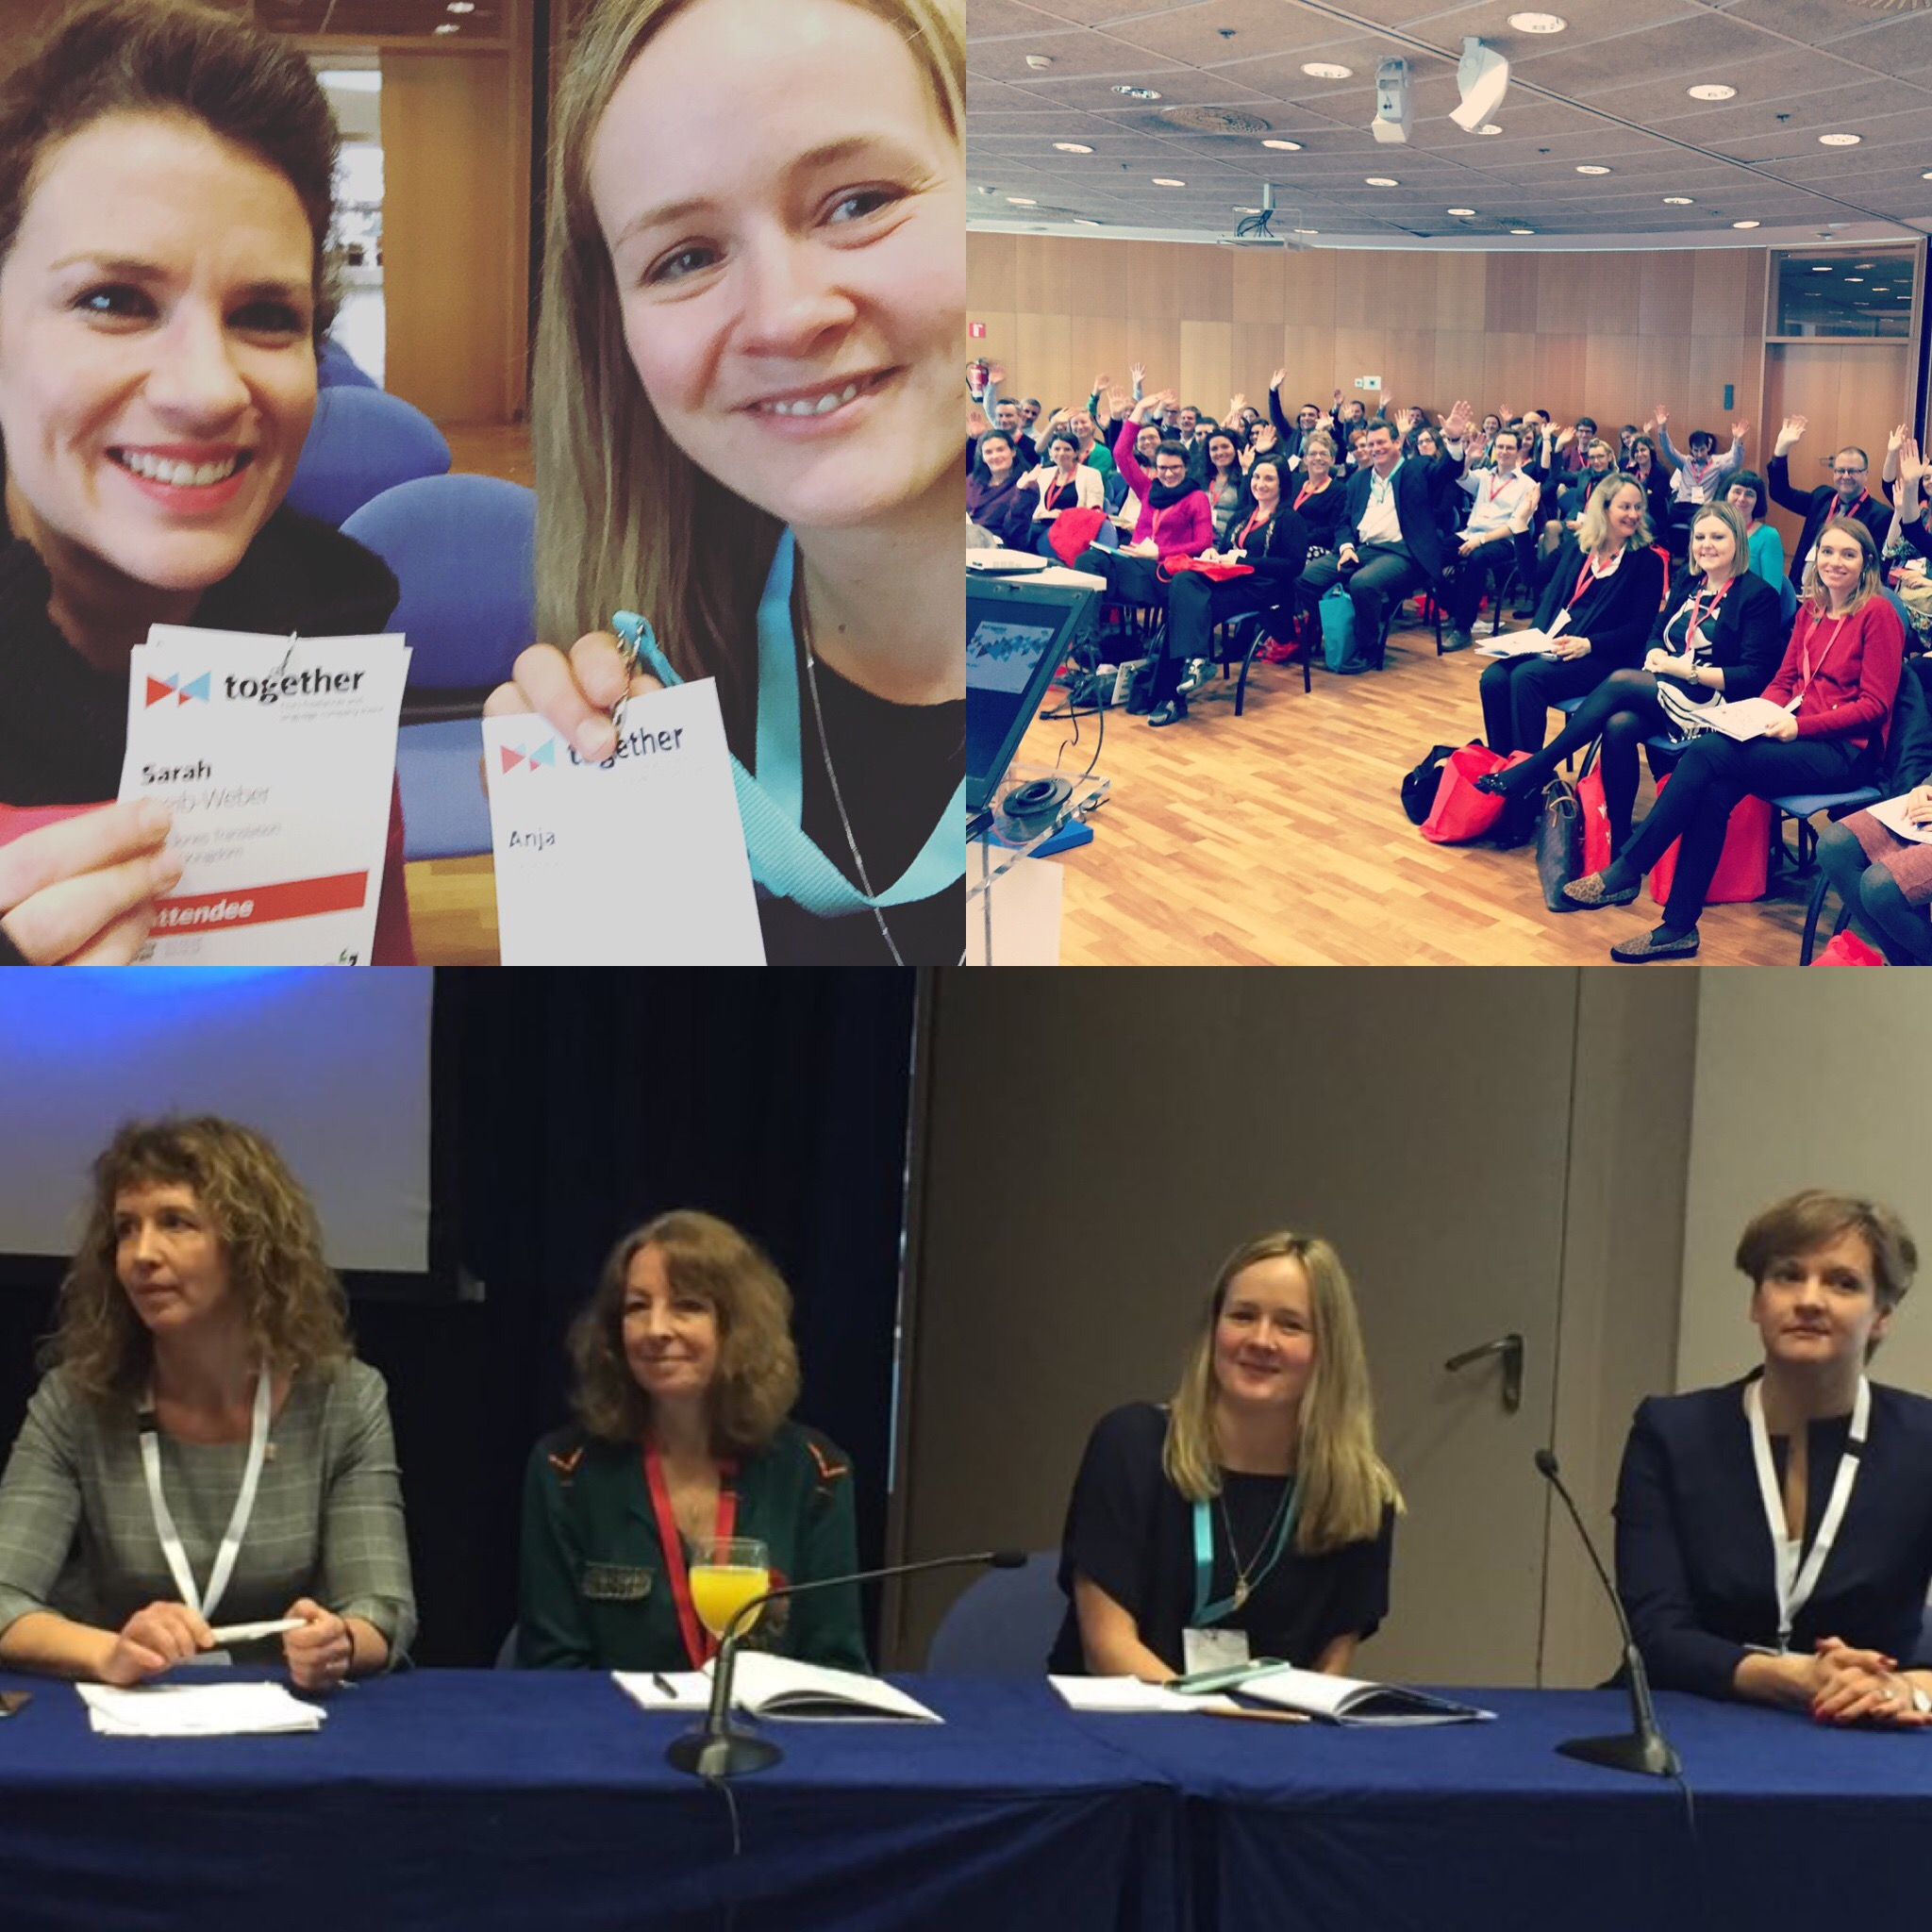 AJT at the ELIA Together 2016